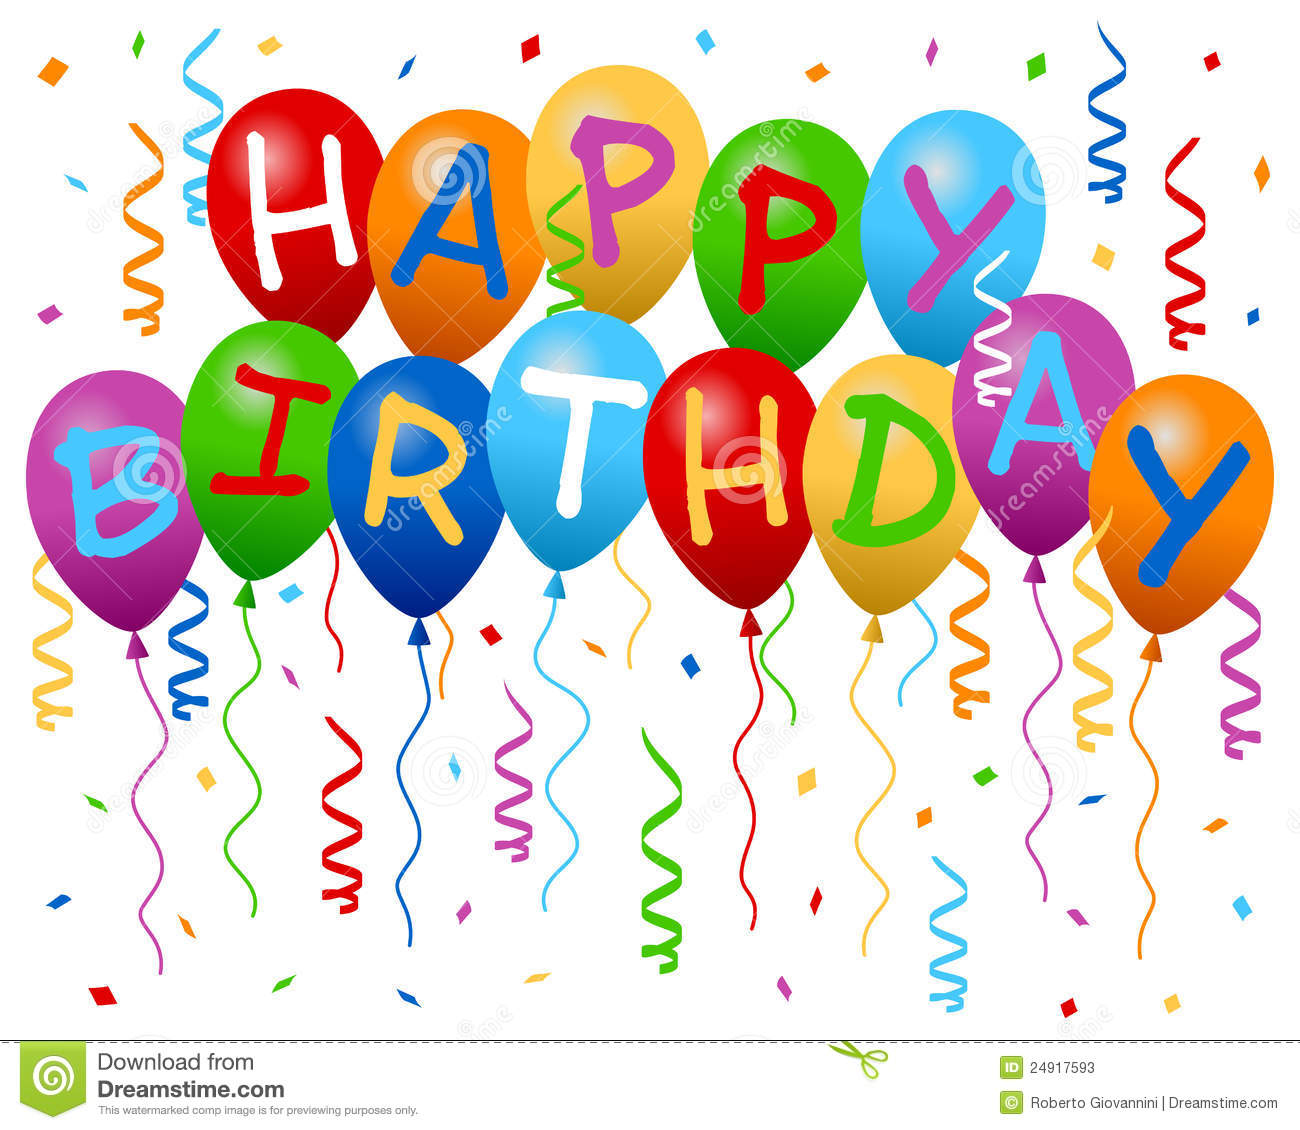 15 Free Happy Birthday Clipart Graphics ClipartLook